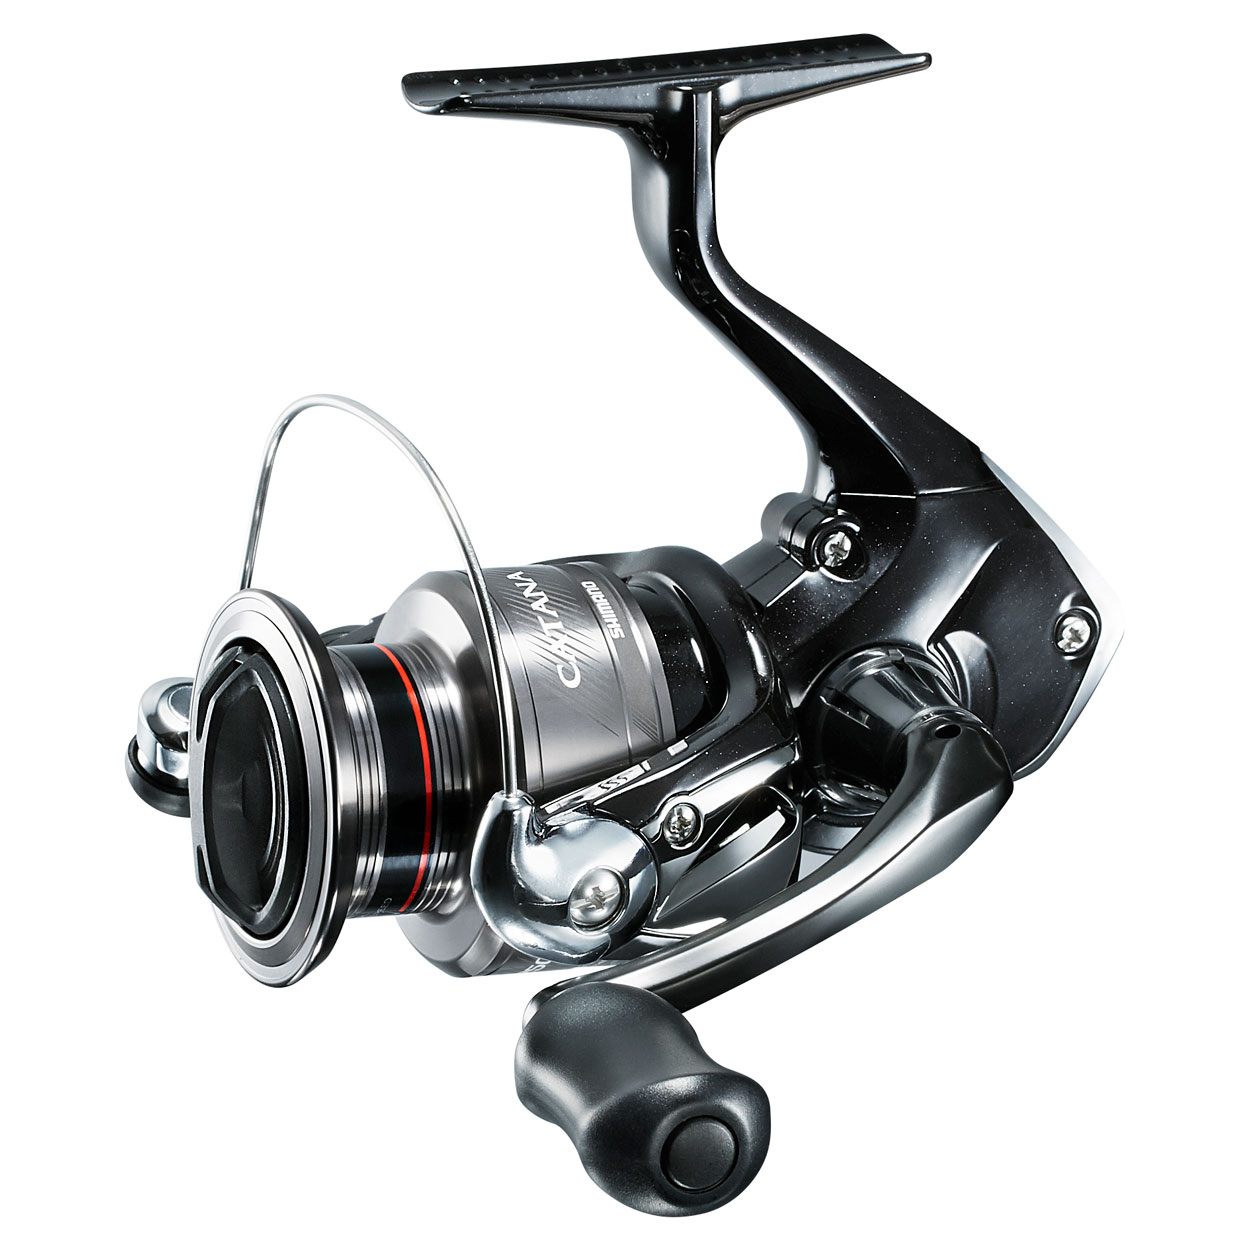 Moulinet spinning crankys catana FD shimano pêche UL truite